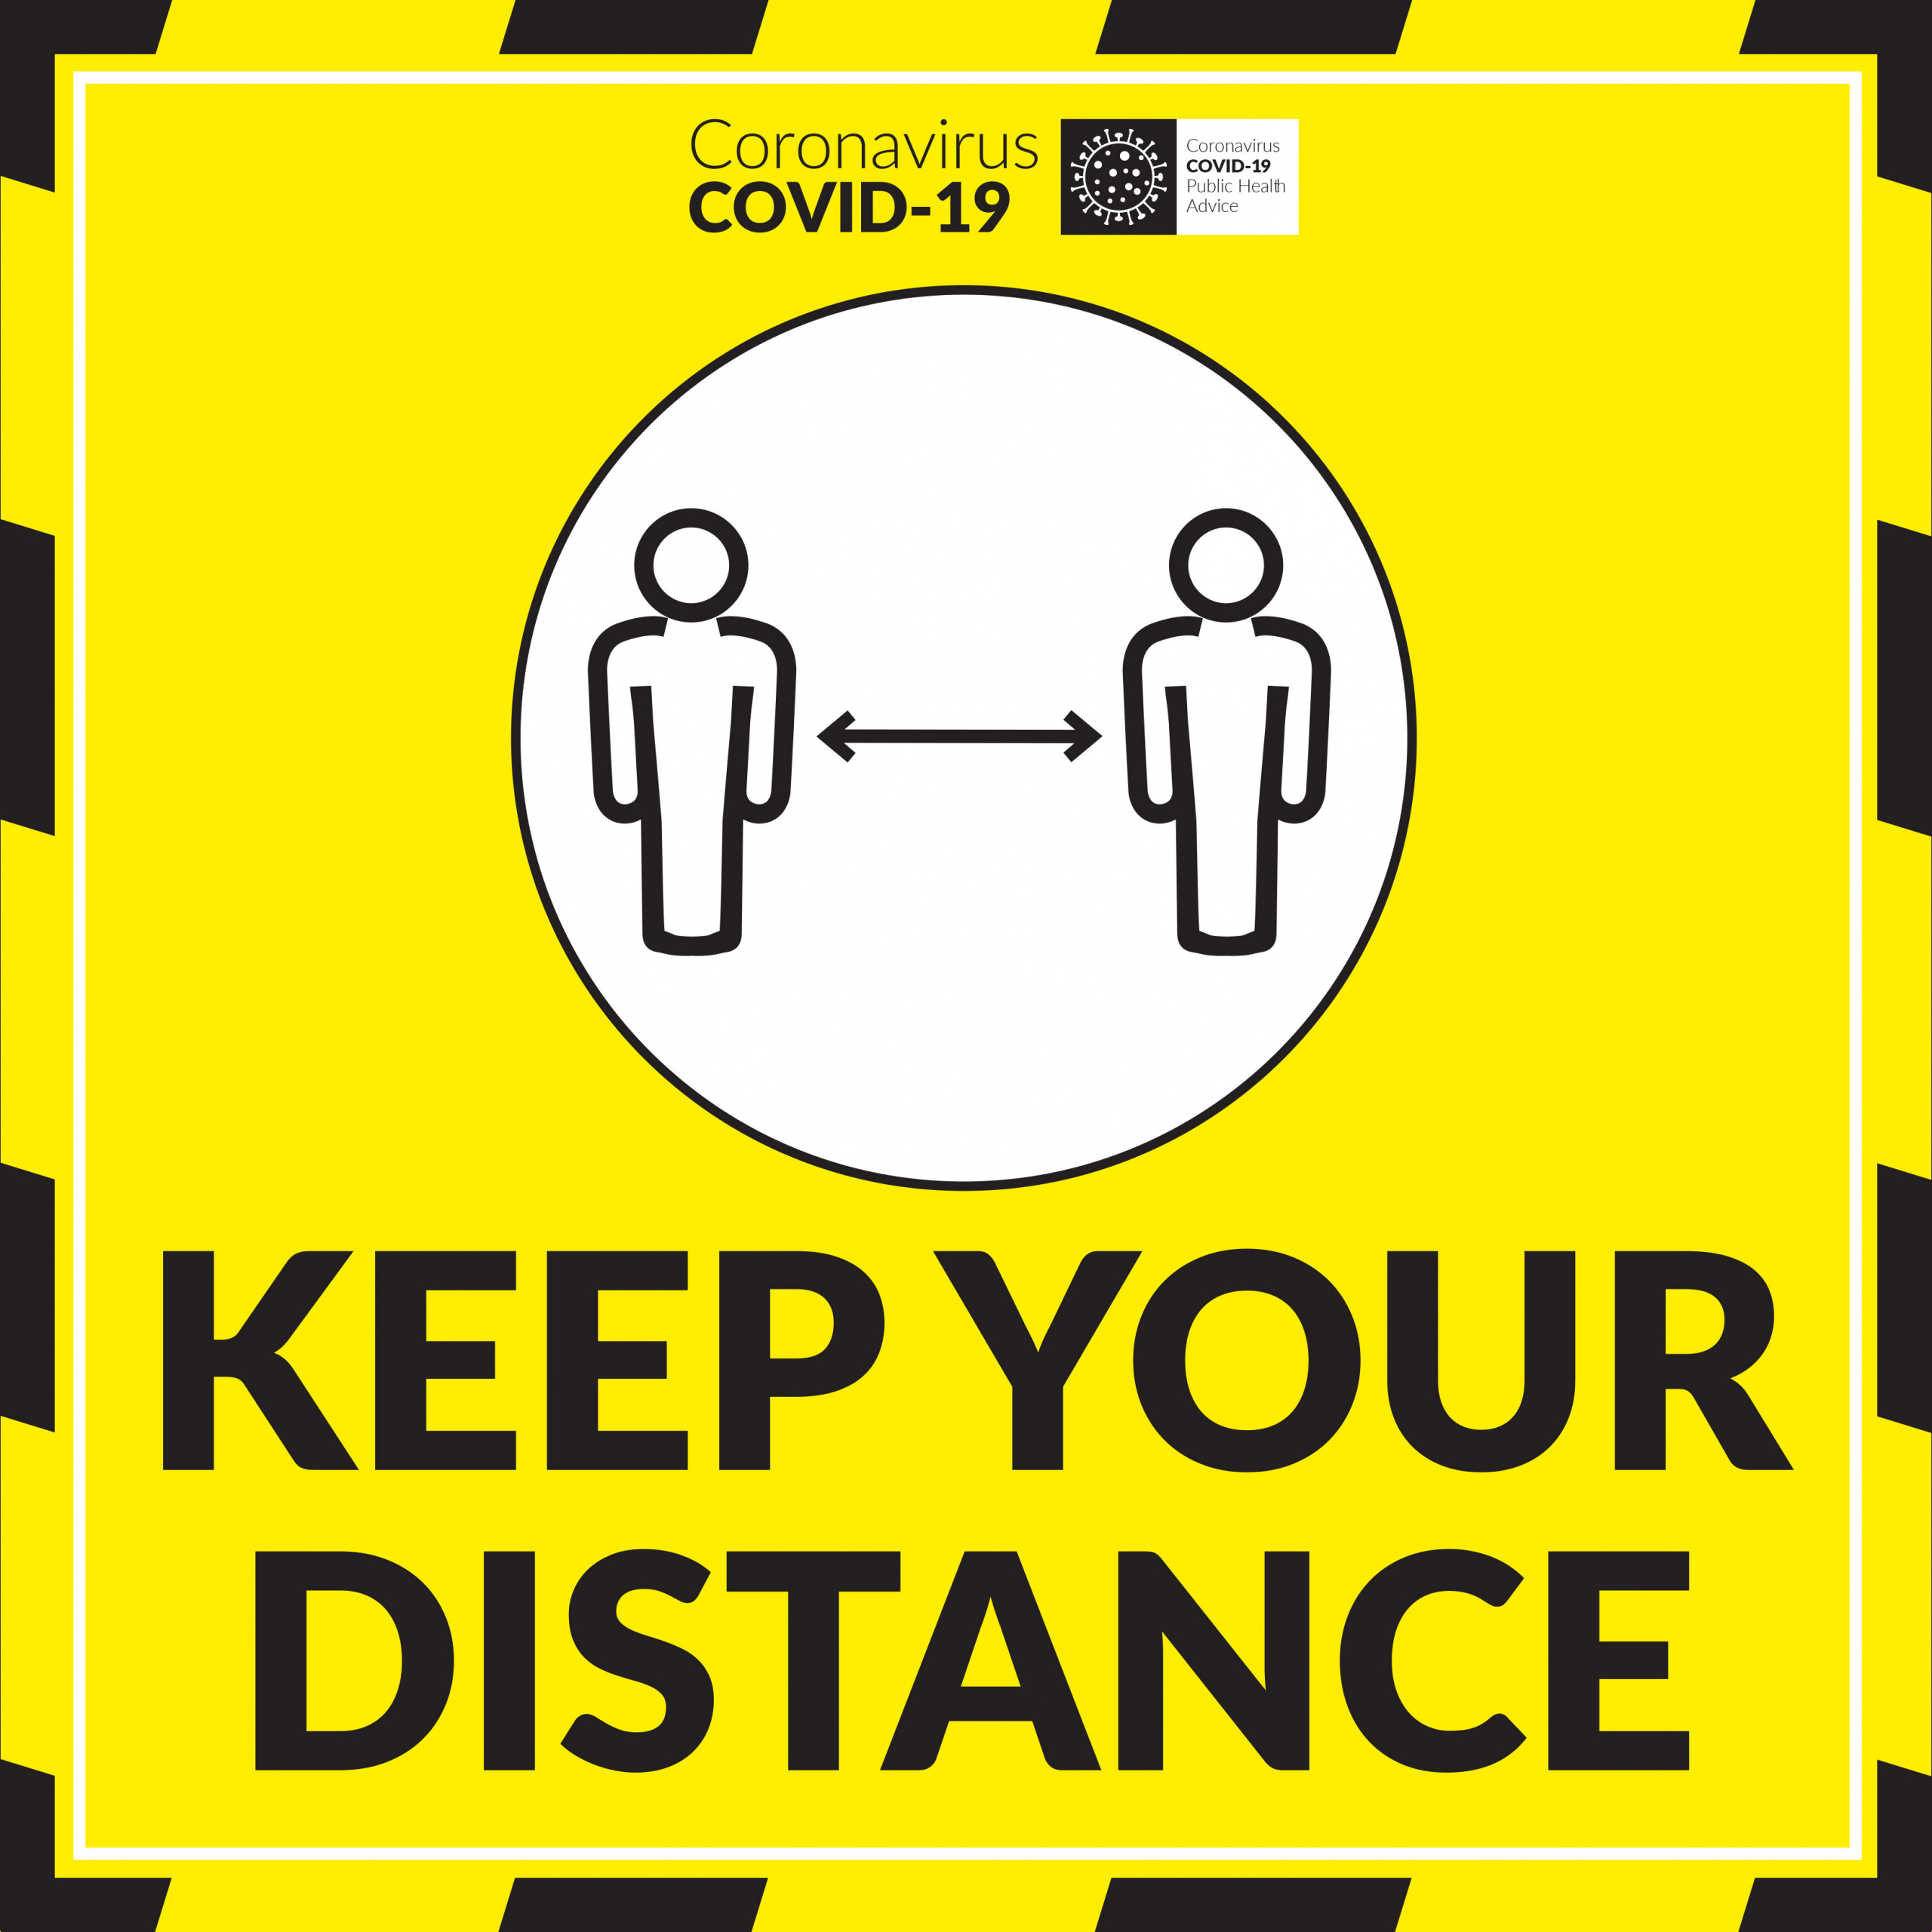 COVID KEEP YOUR DISTANCE FLOOR GRAPHIC Image